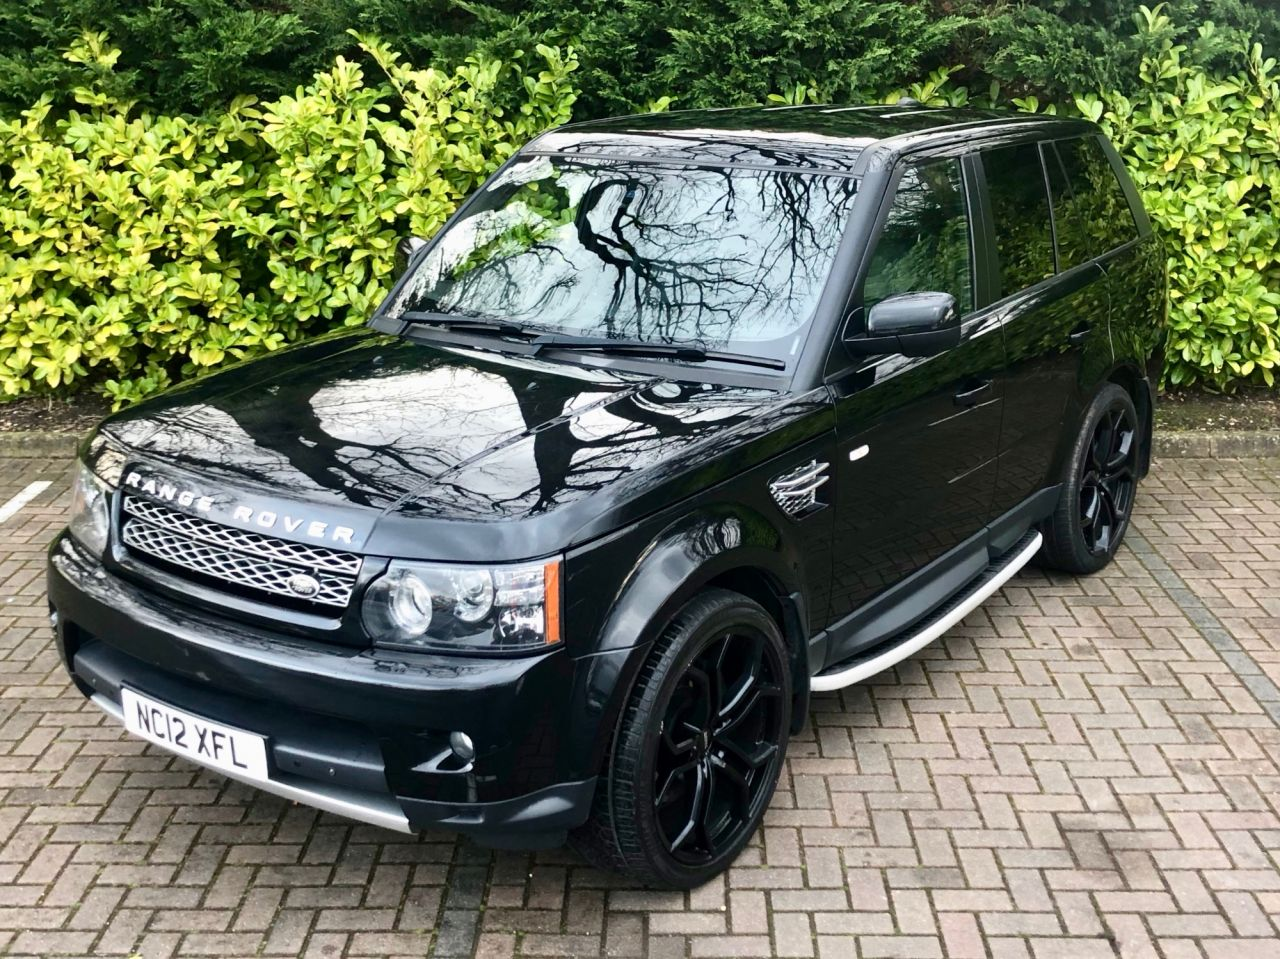 hight resolution of 2012 land rover range rover sport 3 0 sdv6 hse luxury 5d auto 255 bhp px swap